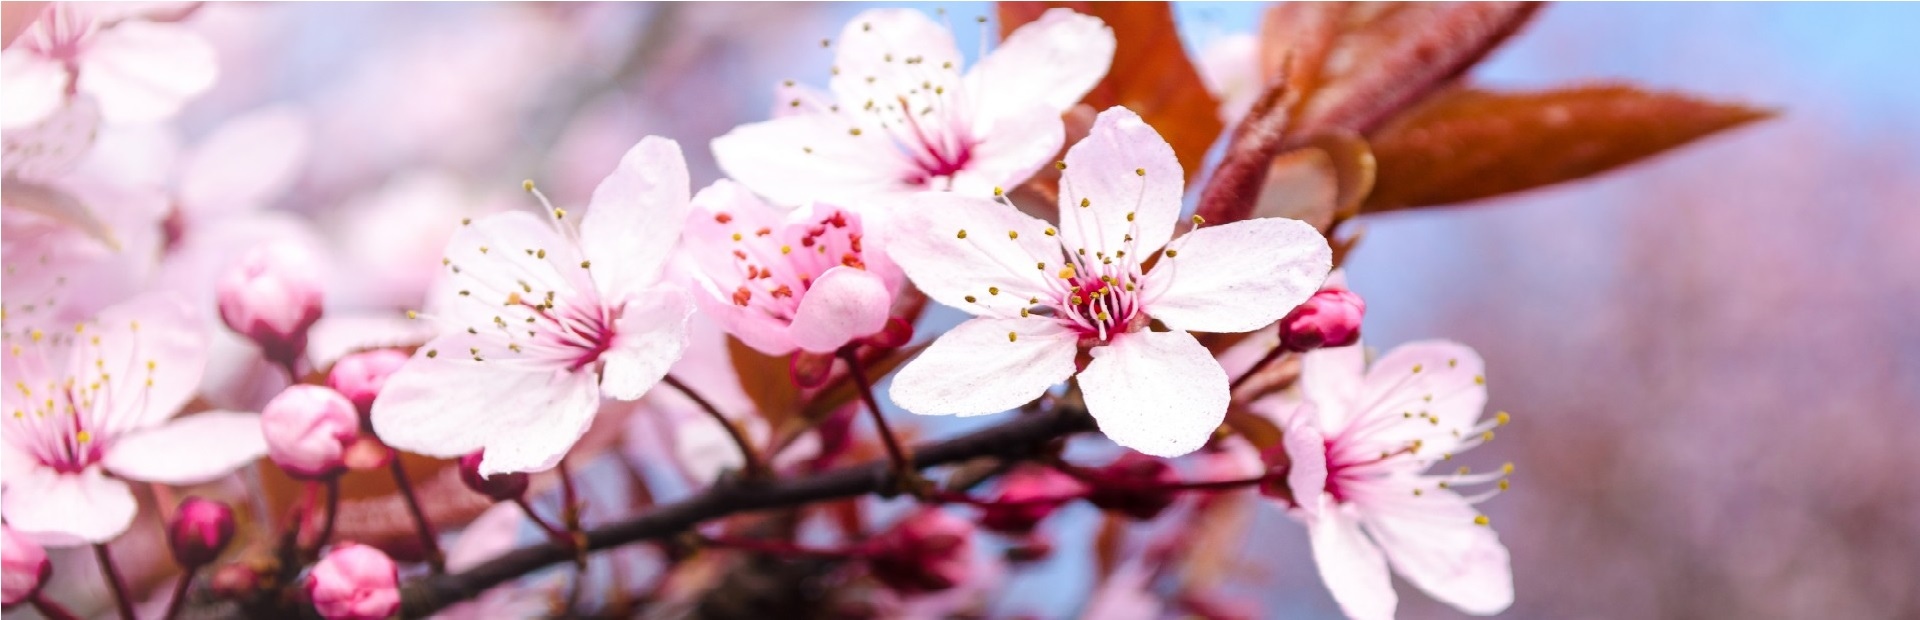 pink-blossom-flowers-on-a-branch